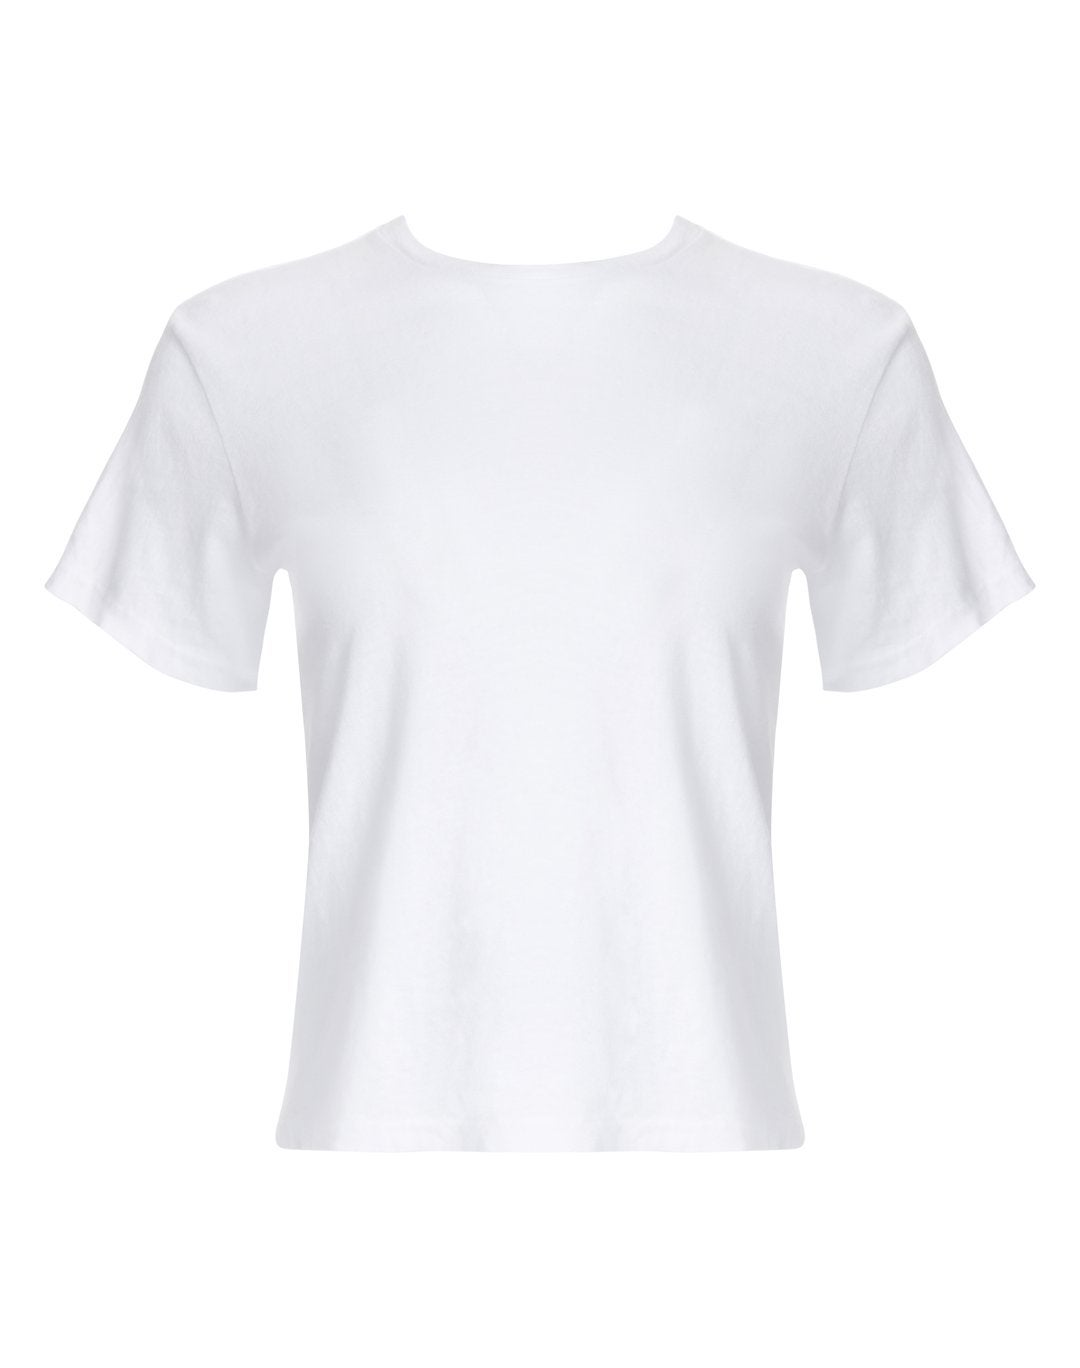 66c83d1dab Best Quality Womens White T-Shirts 2019 Brand Reviews